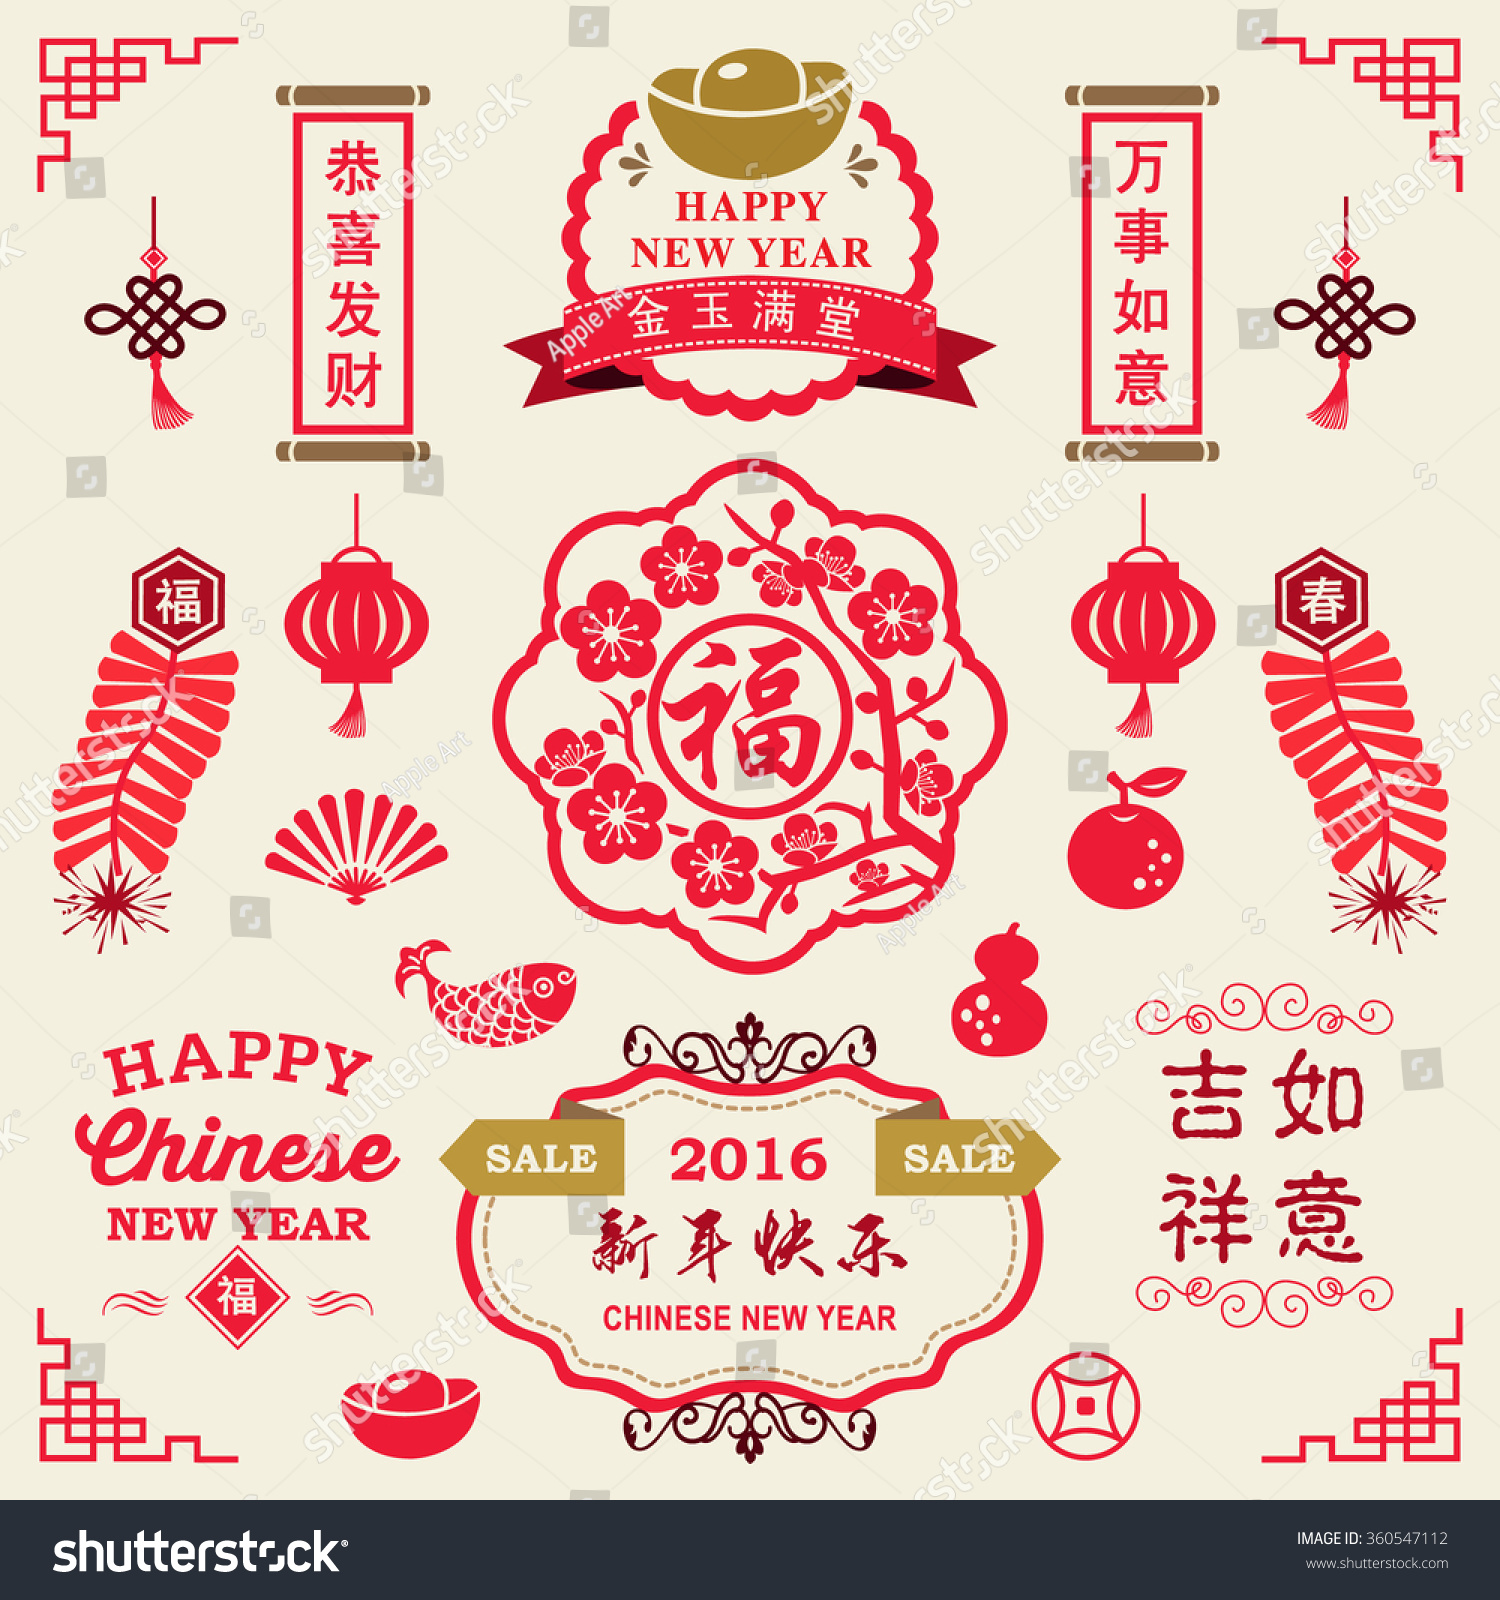 Vintage Chinese Calendar : Chinese new year decoration collection calligraphy stock